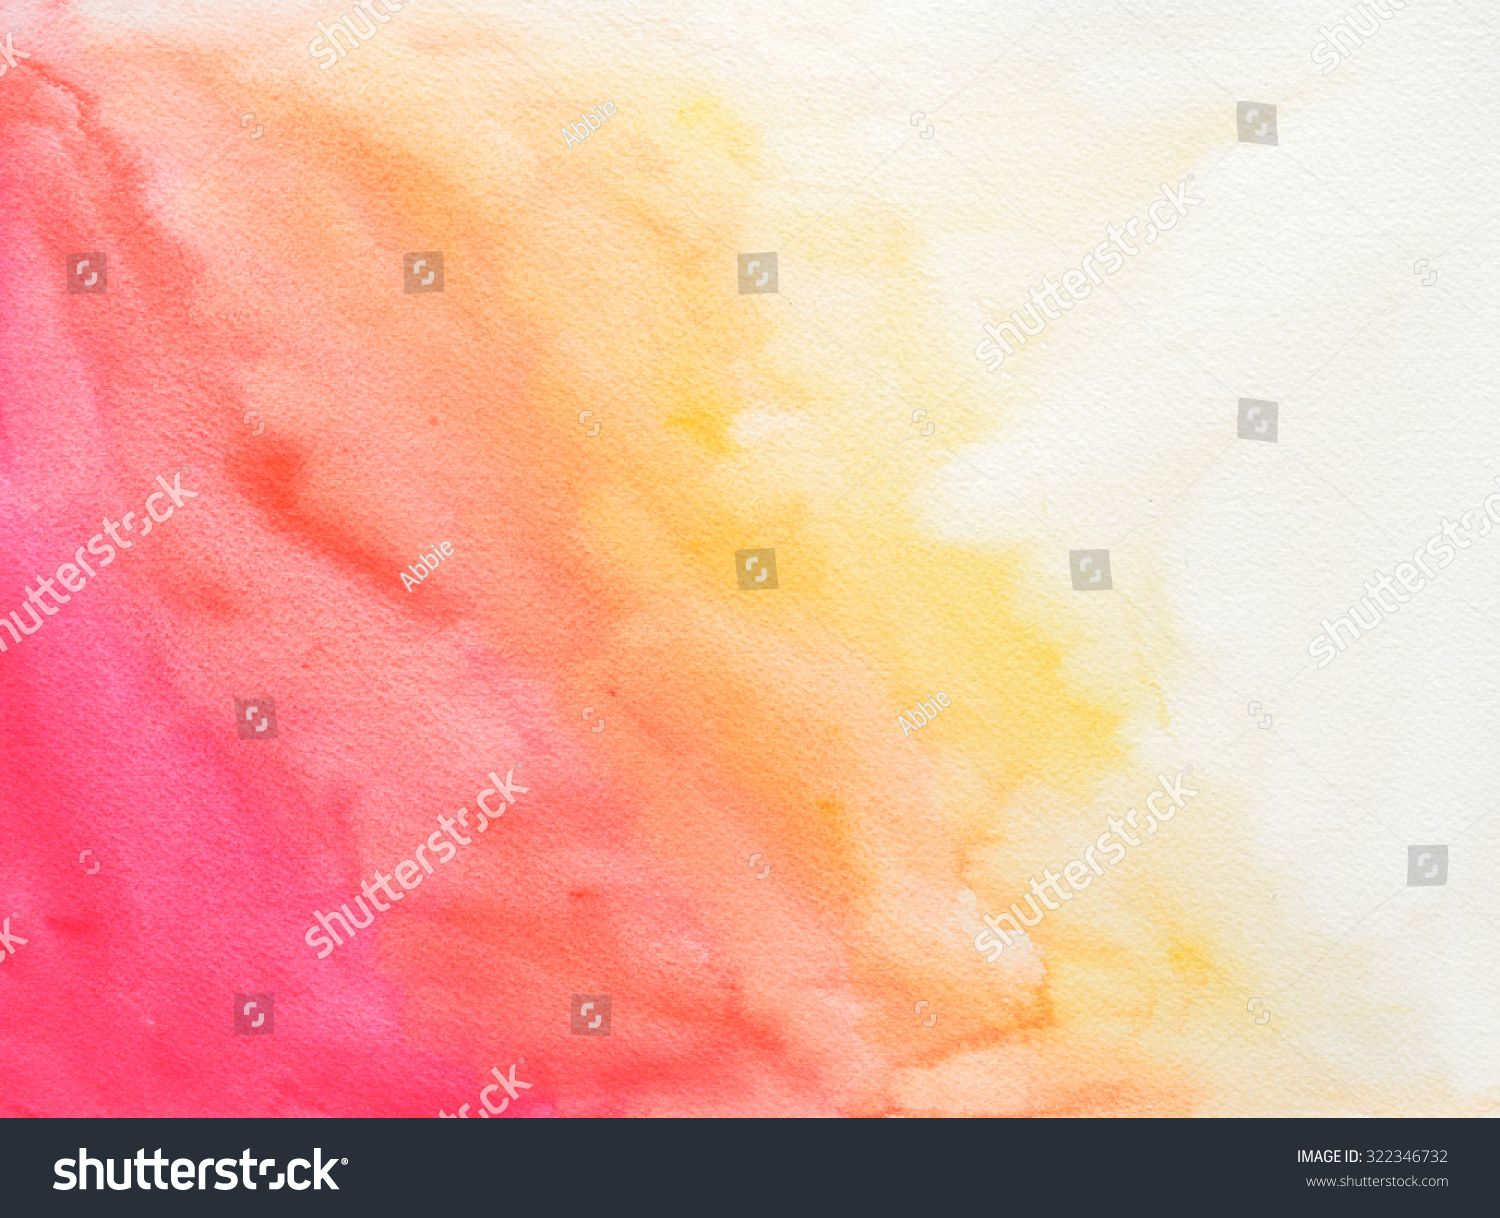 Background Of Textured Watercolor Paper With Pink Orange And